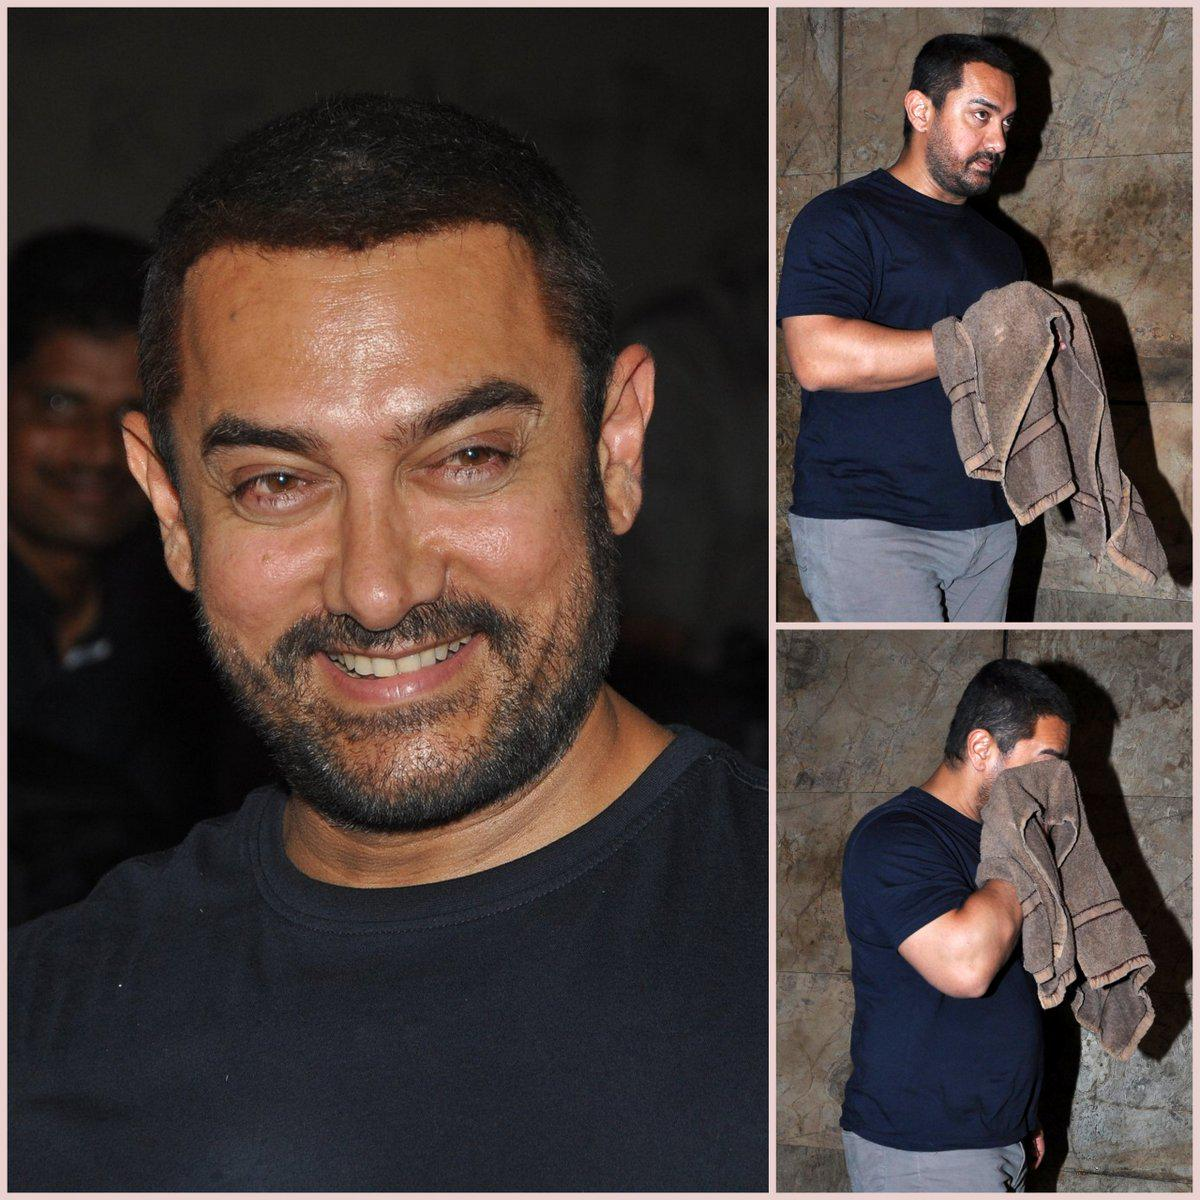 When a superstar cried after watching Bajrangi Bhaijaan ... A very emotional #AamirKhan #MasterpieceBajrangiBhaijaan http://t.co/sTGgVOMvkK